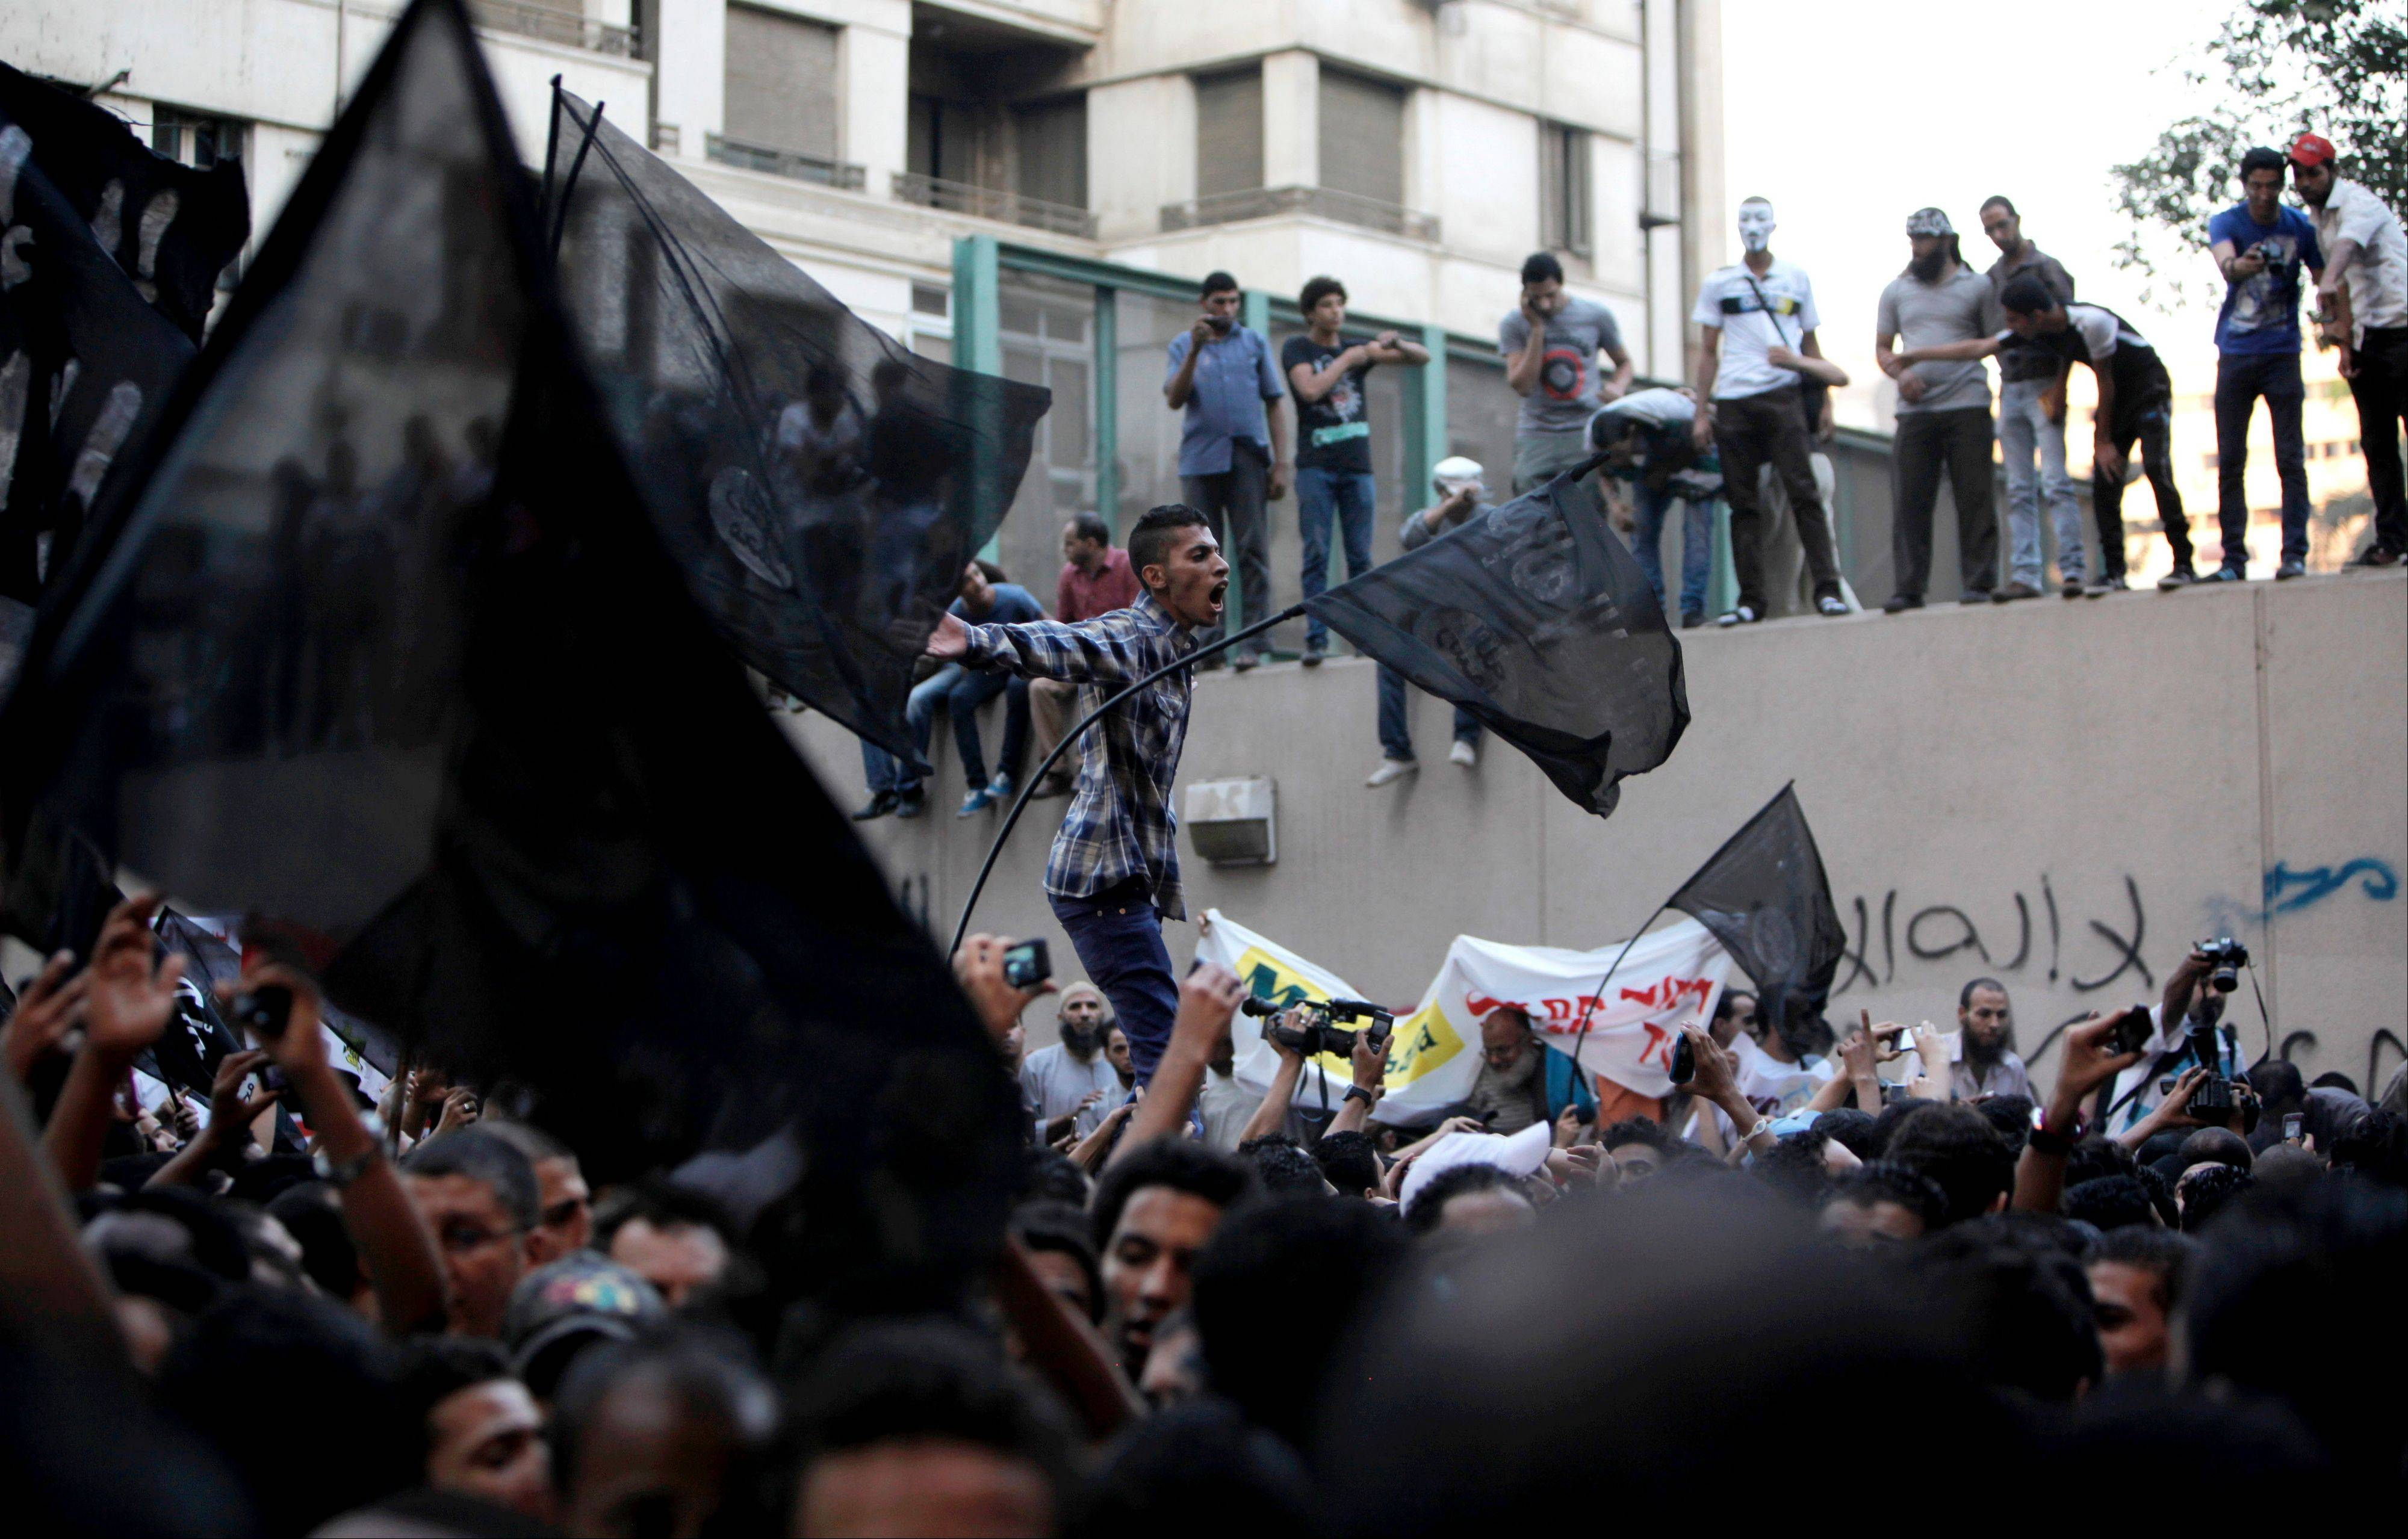 Egyptian protesters climb the walls of the U.S. embassy while others chant anti U.S. slogans during a protest in Cairo, Egypt.